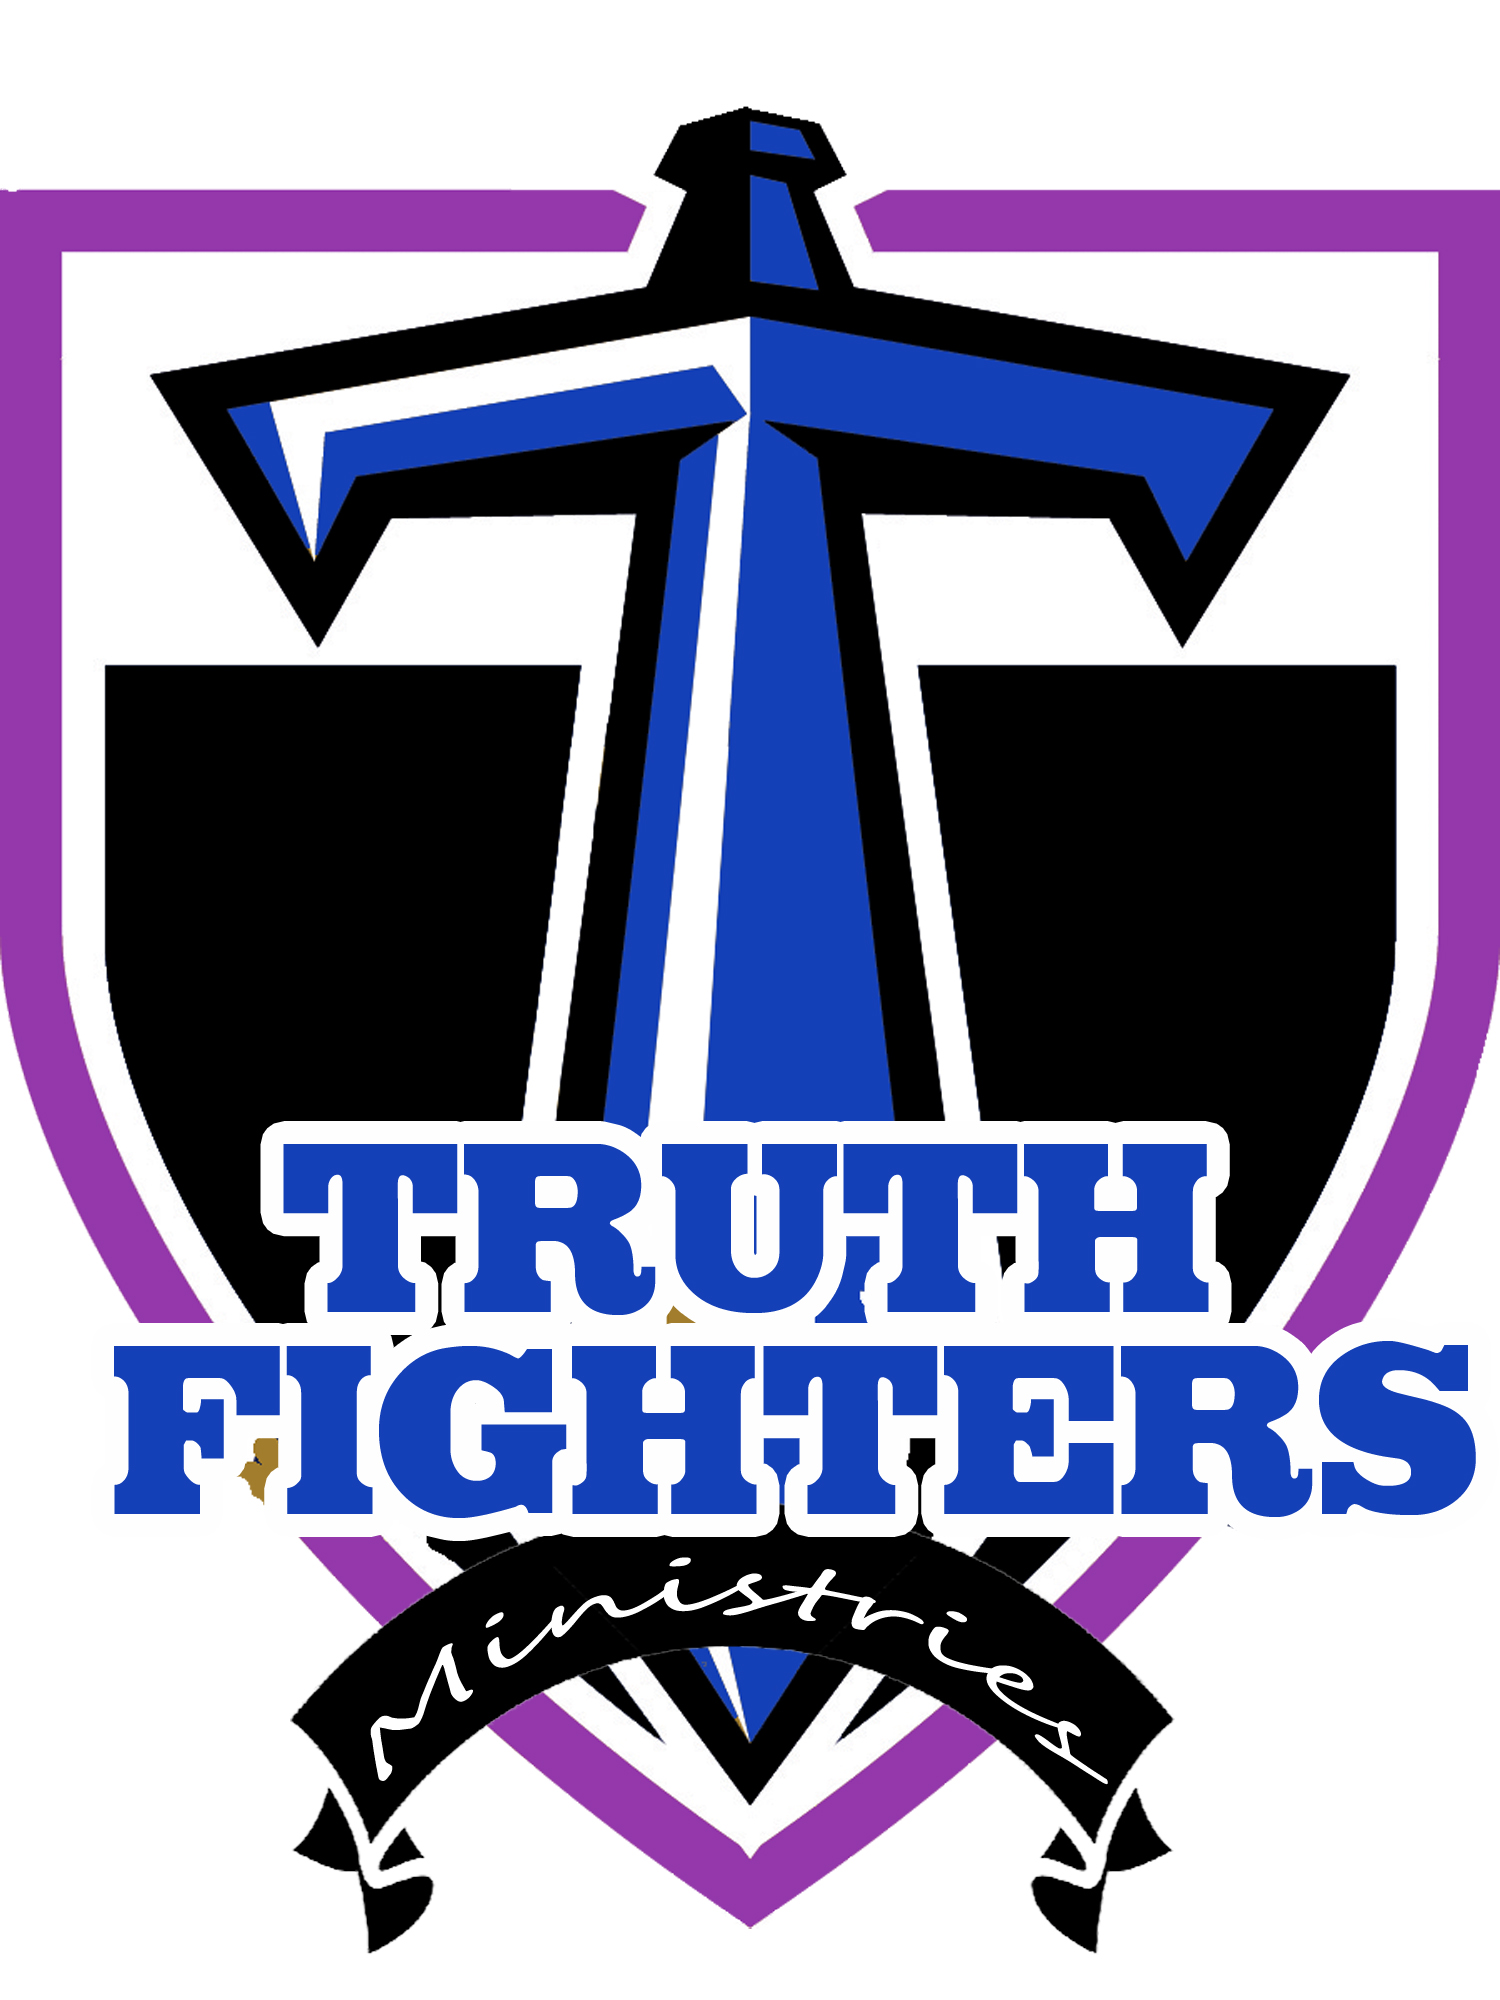 <![CDATA[Truth Fighters Ministries - Weekly Podcast]]>